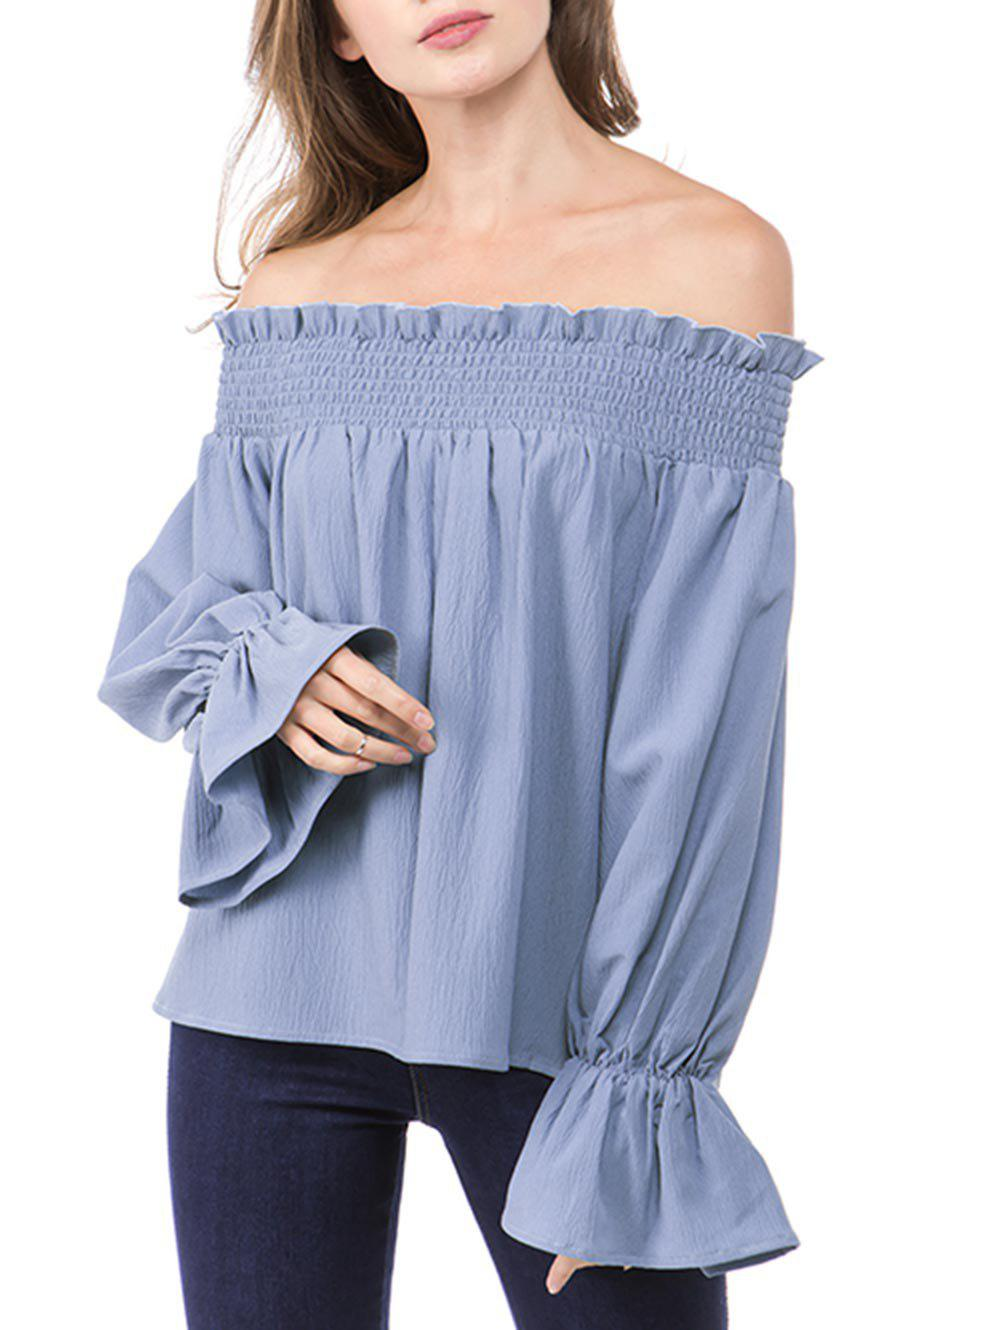 Poet Sleeve Off The Shoulder Shirred Blouse - LIGHT BLUE M